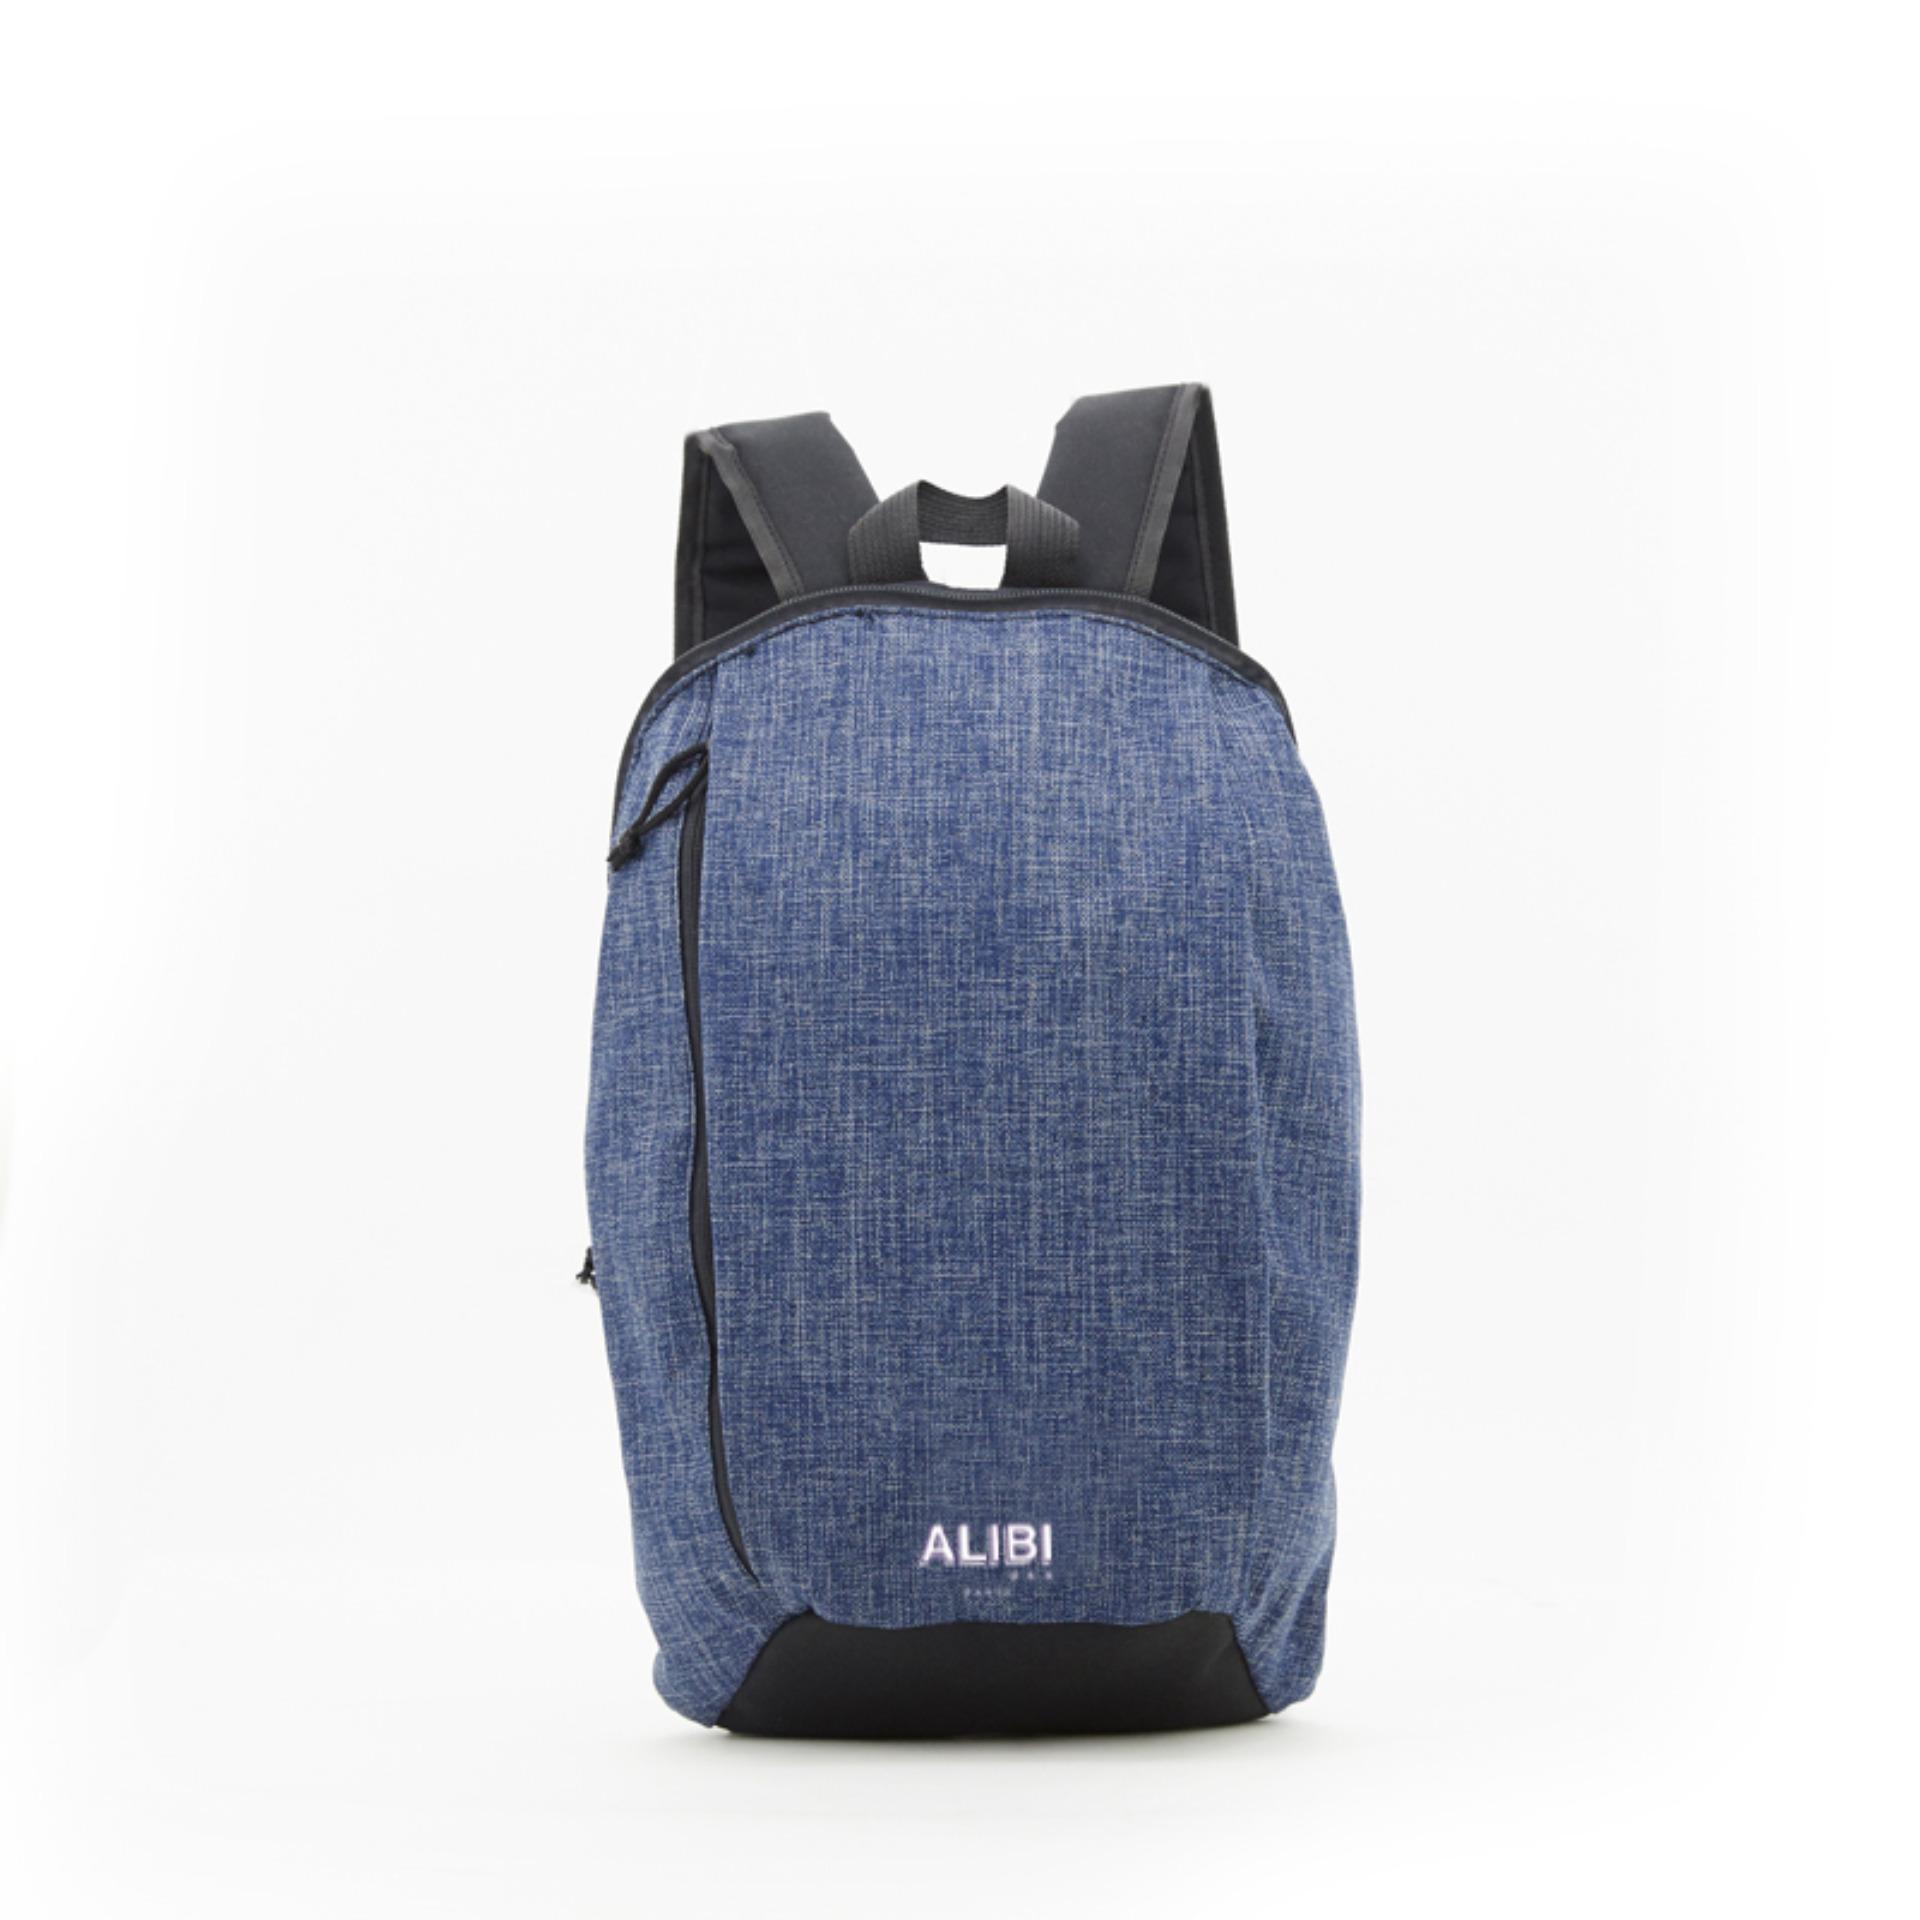 Tips Beli Alibi Paris Alston Bag